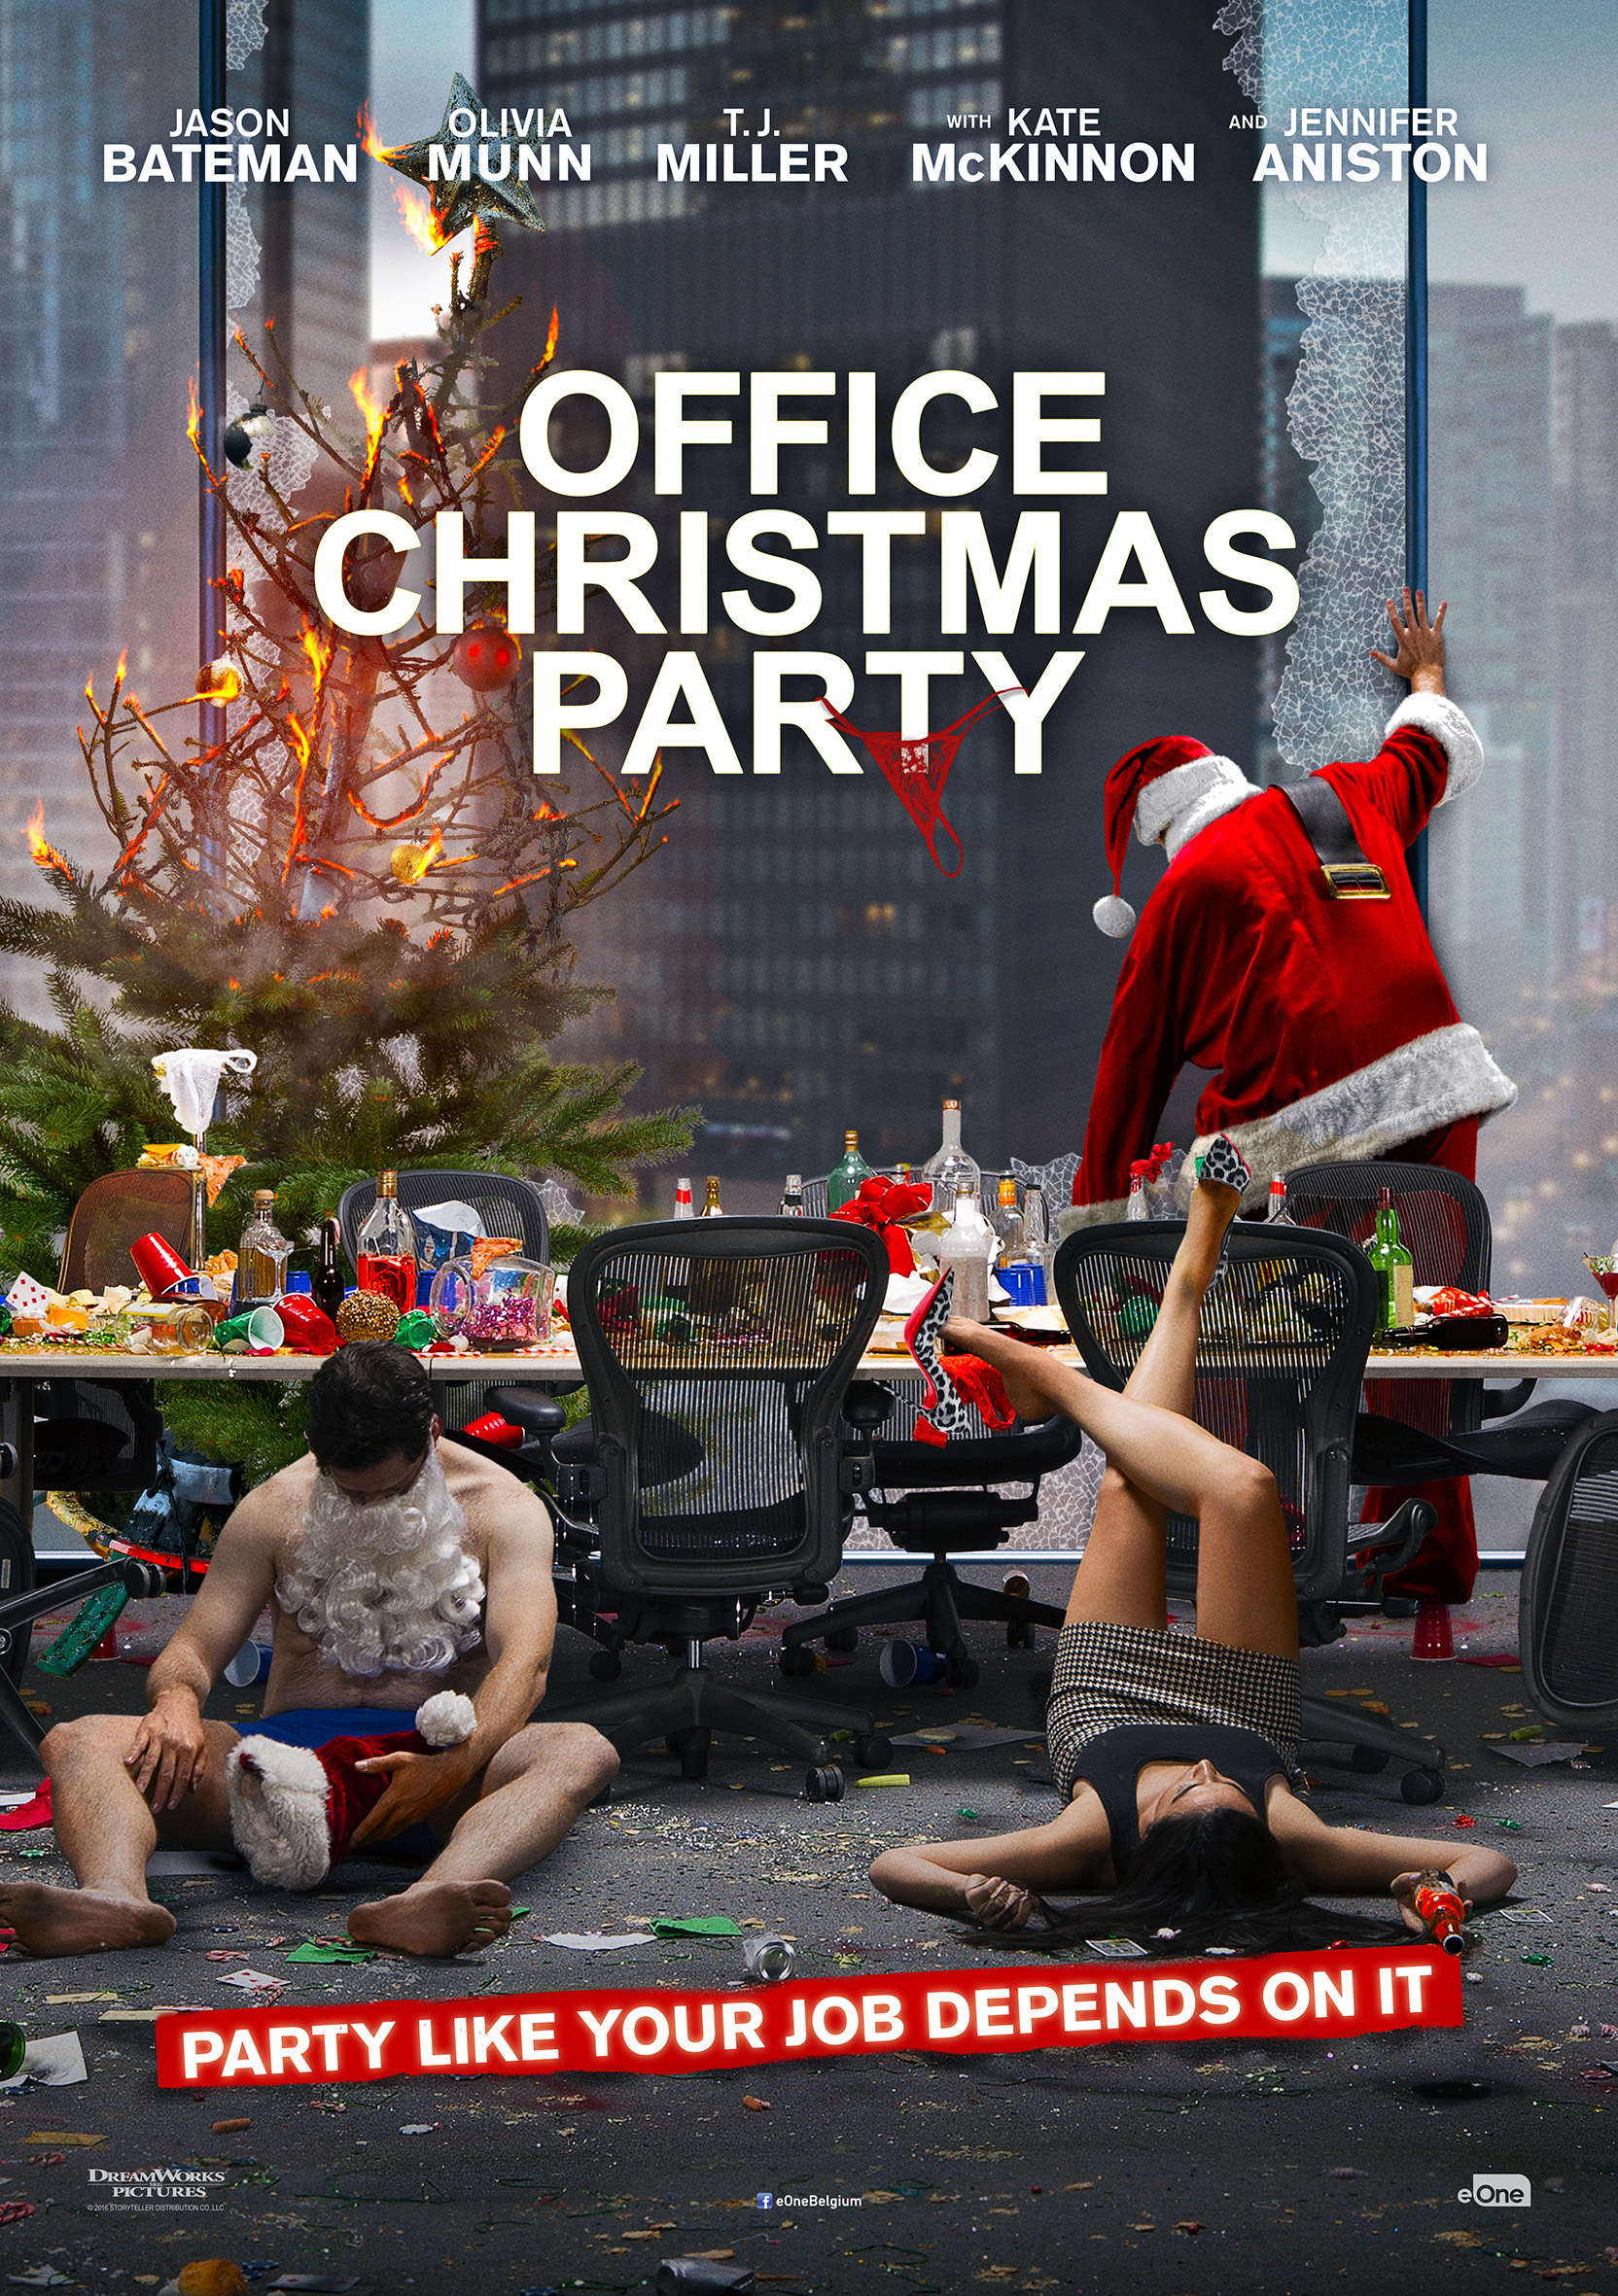 officechristmaspartybe-70x100poster-300